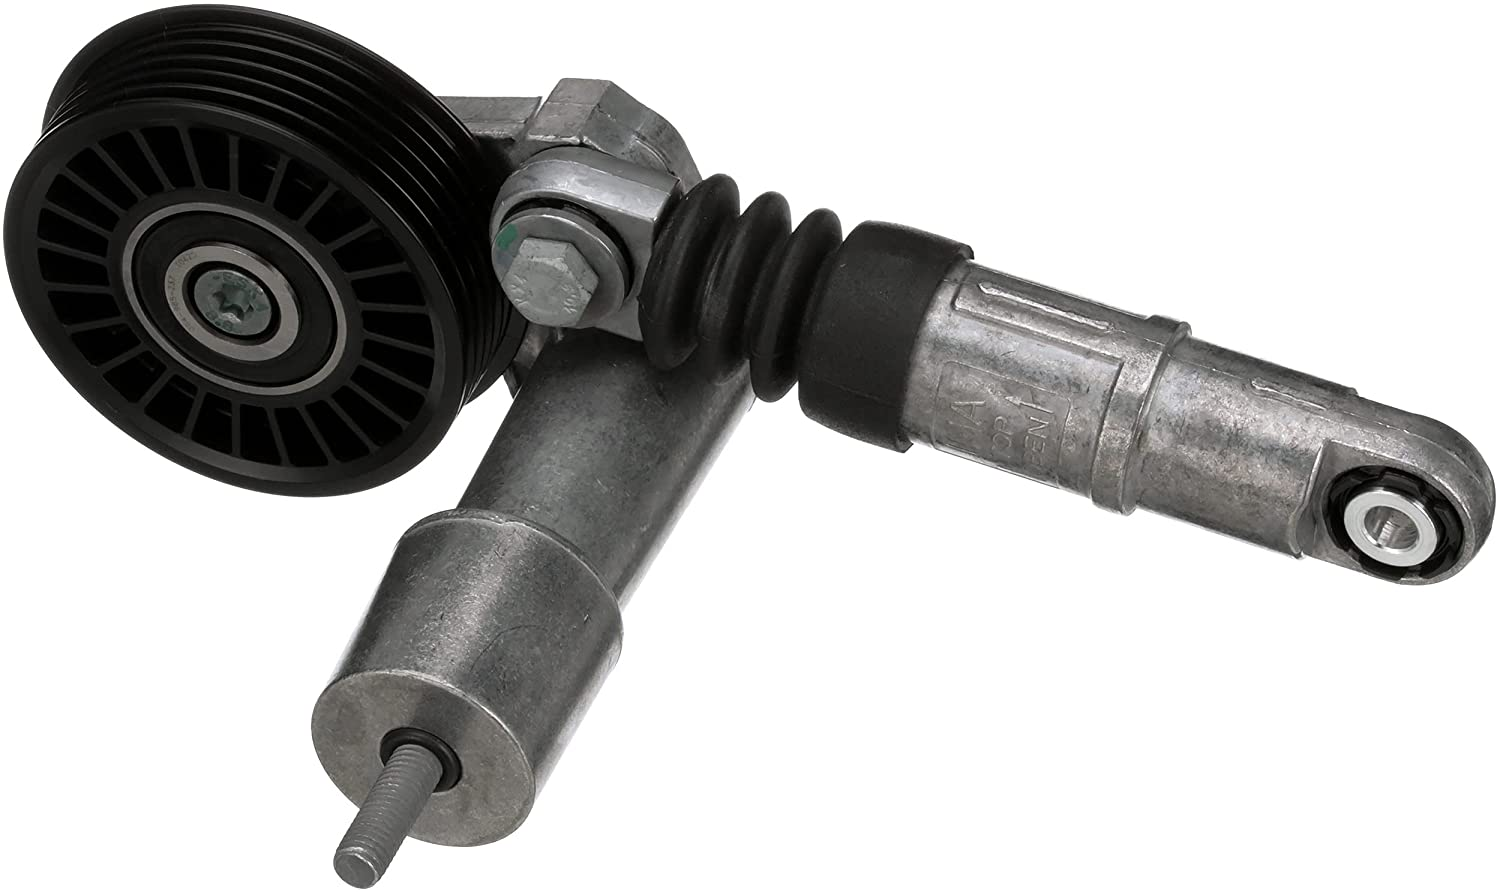 Gates 38326 DriveAlign Automatic Drive Belt Tensioner Max 43% Year-end gift OFF